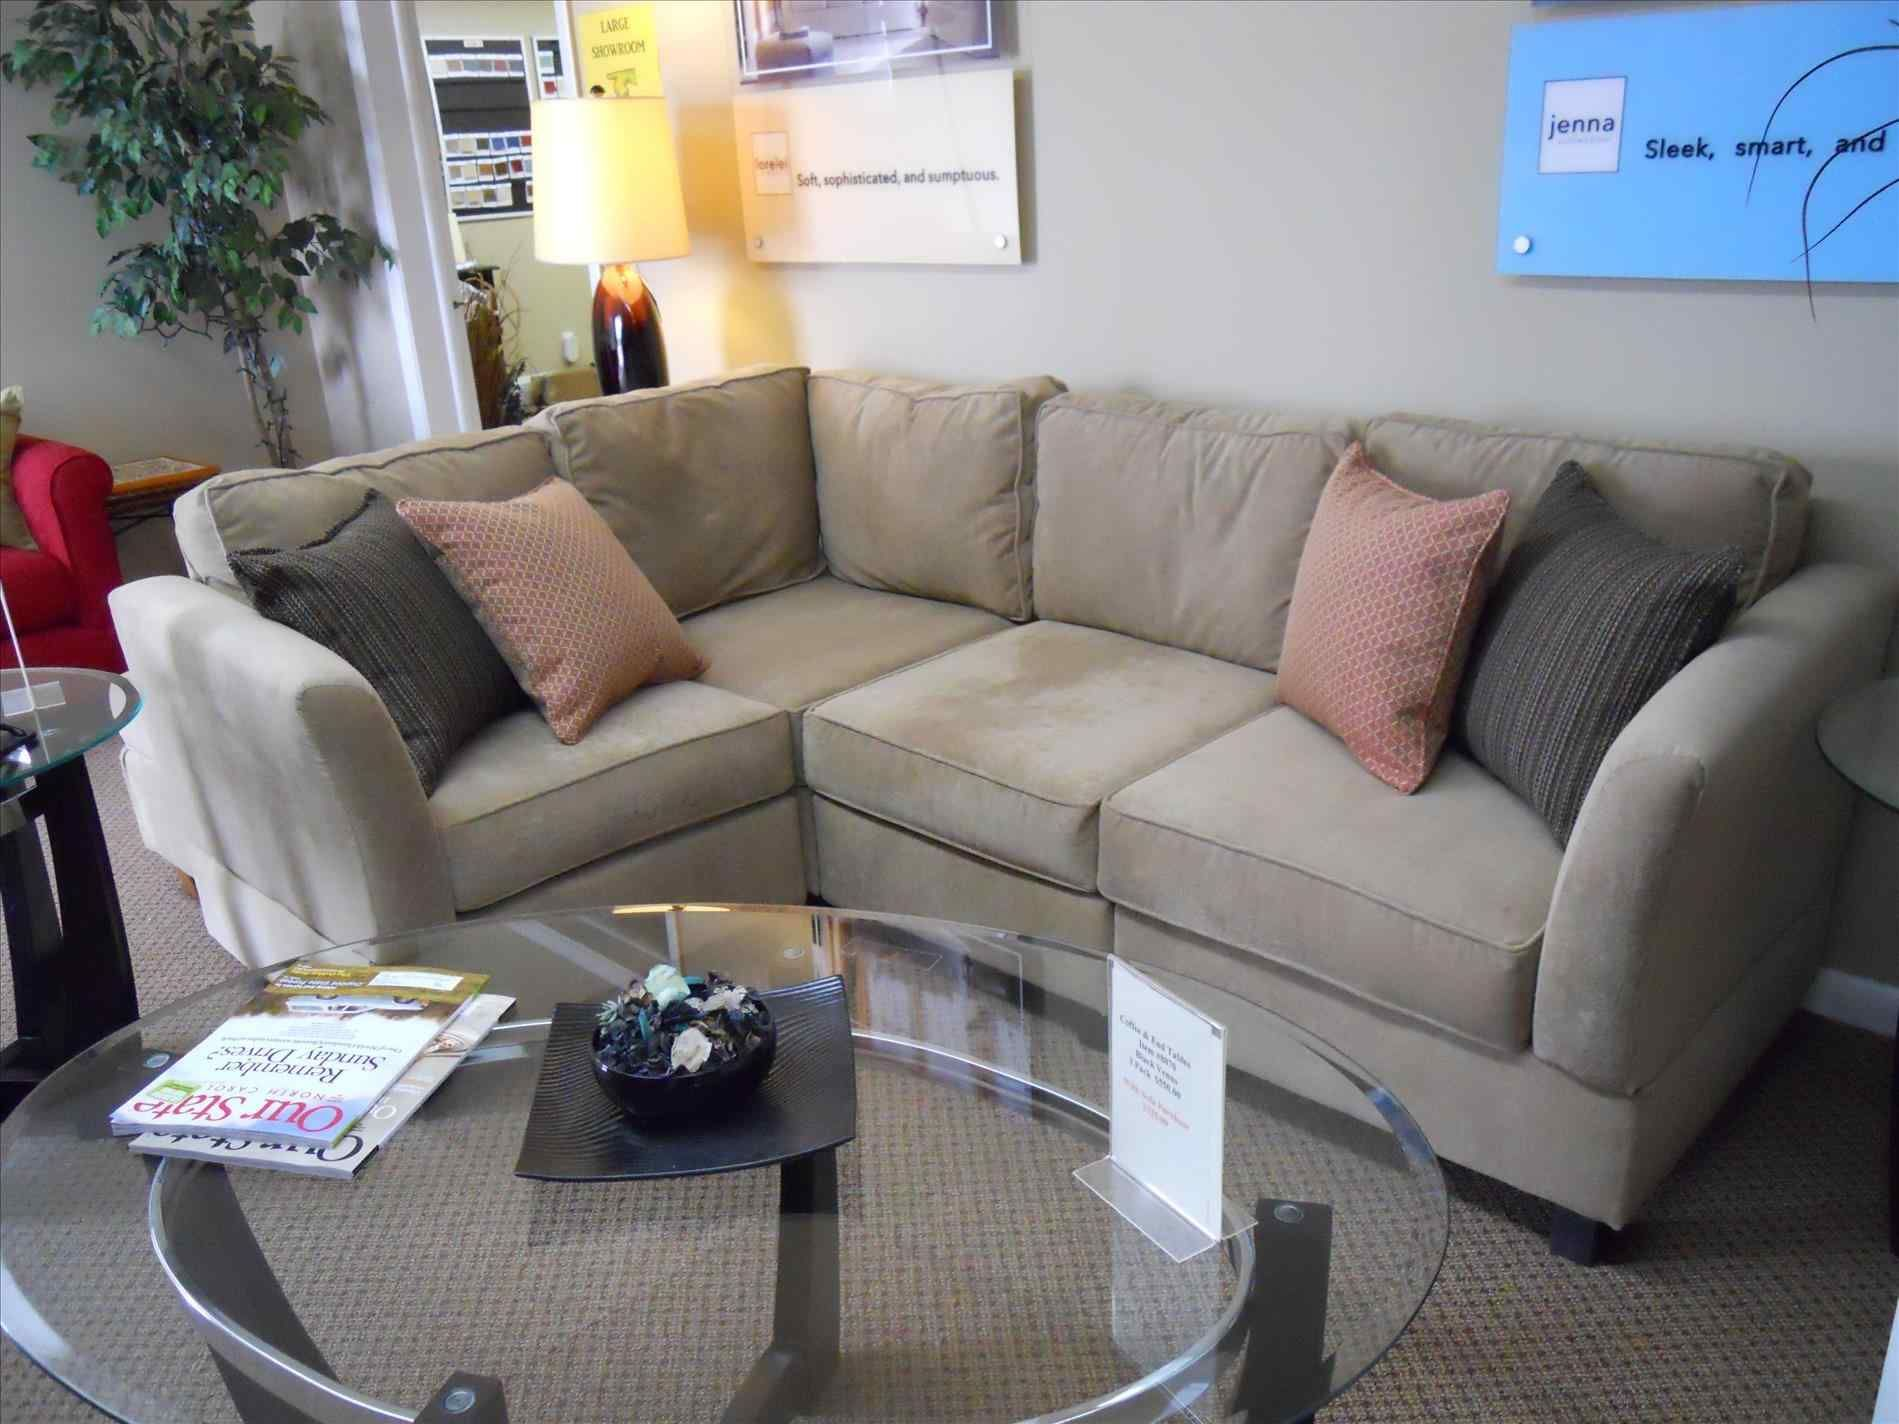 za chairs couch uk corner of leather distressed under deep that mechanism size recliner parts apart extra lb furniture pillows full comes riser sofa with sectional